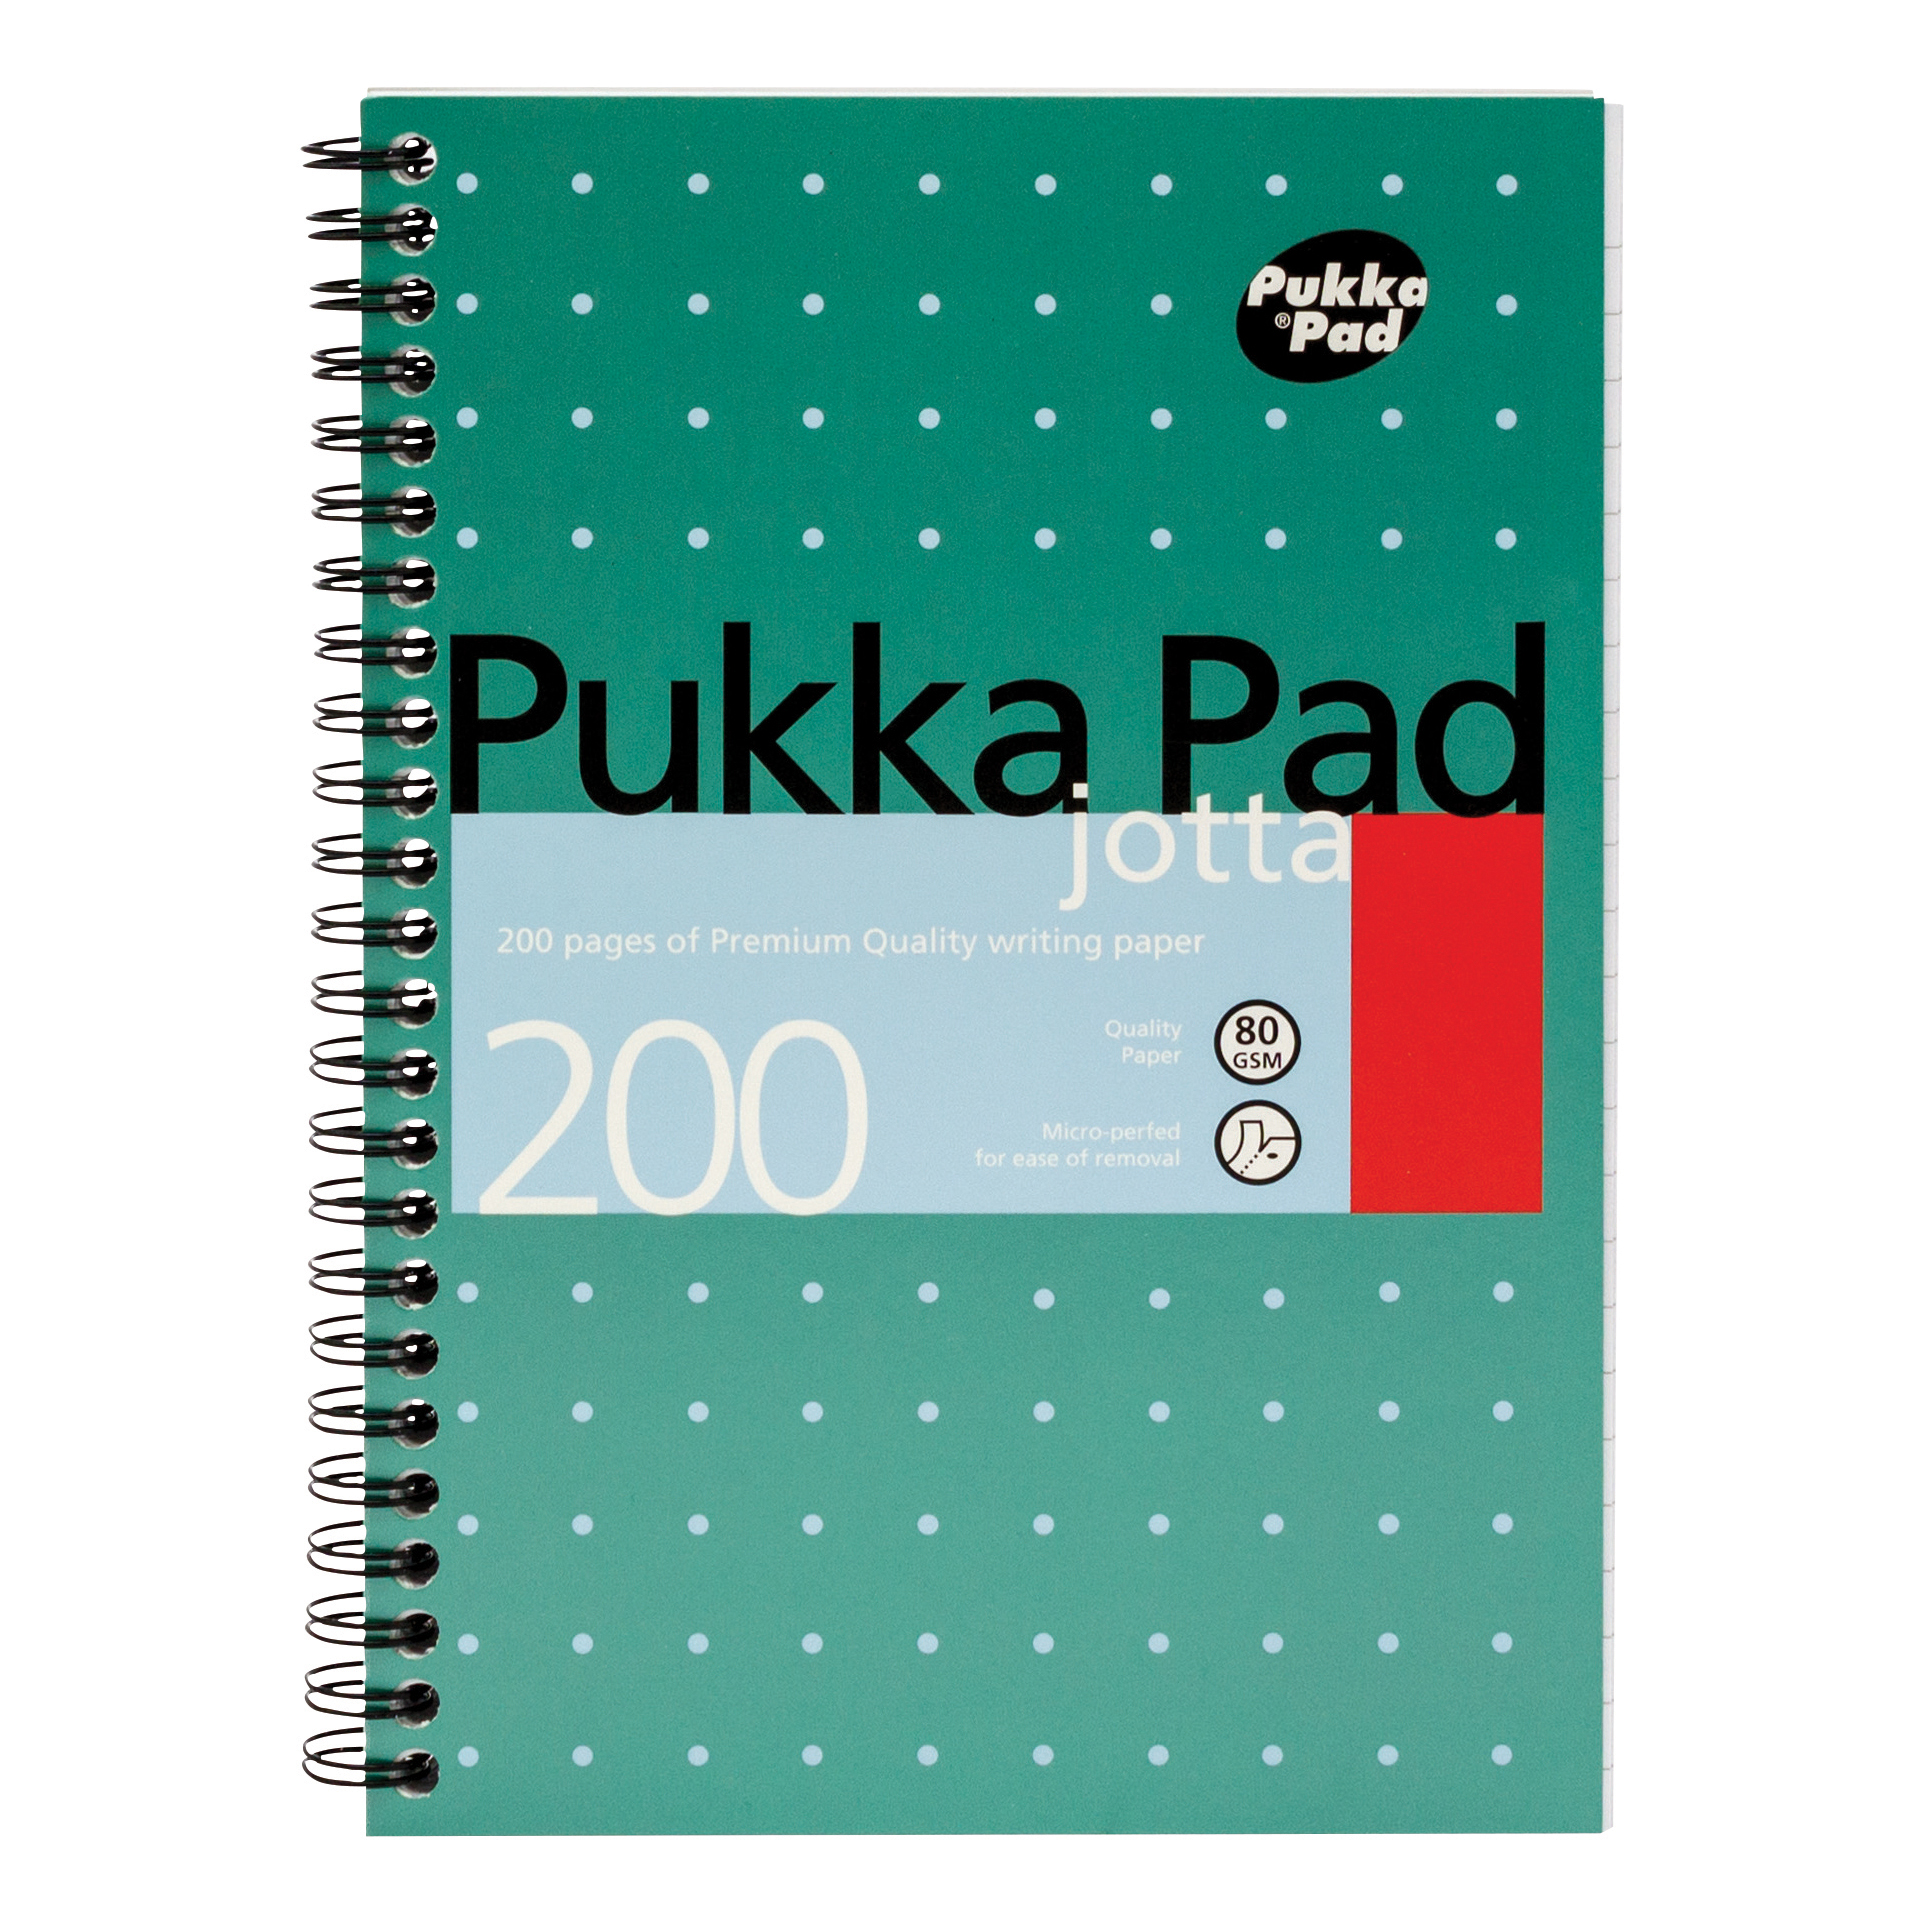 Pukka Pad Metallic Jotta Nbk Wirebound 80gsm Ruled Perforated 200pp A5 Metallic Green Ref JM021 Pack 3